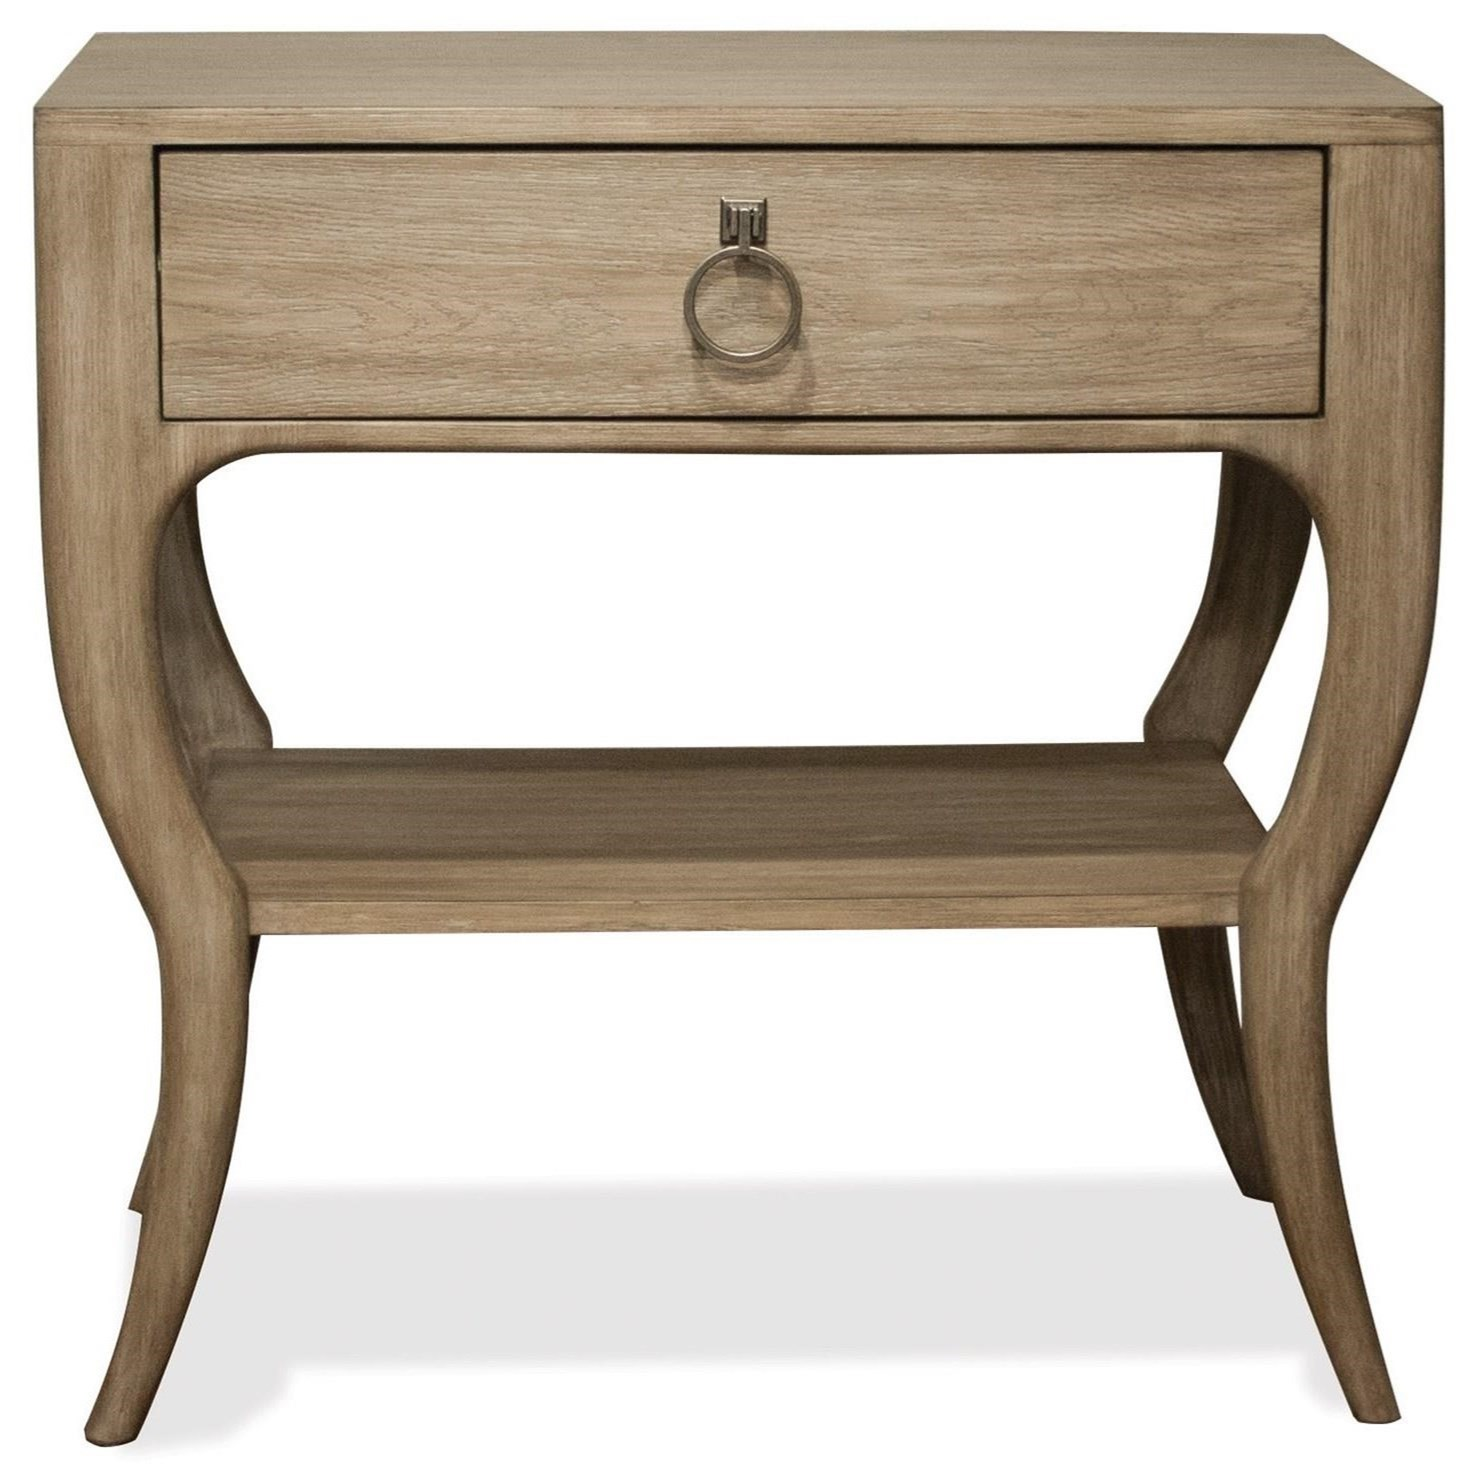 Accent Nightstand With Ring Pull Hardware